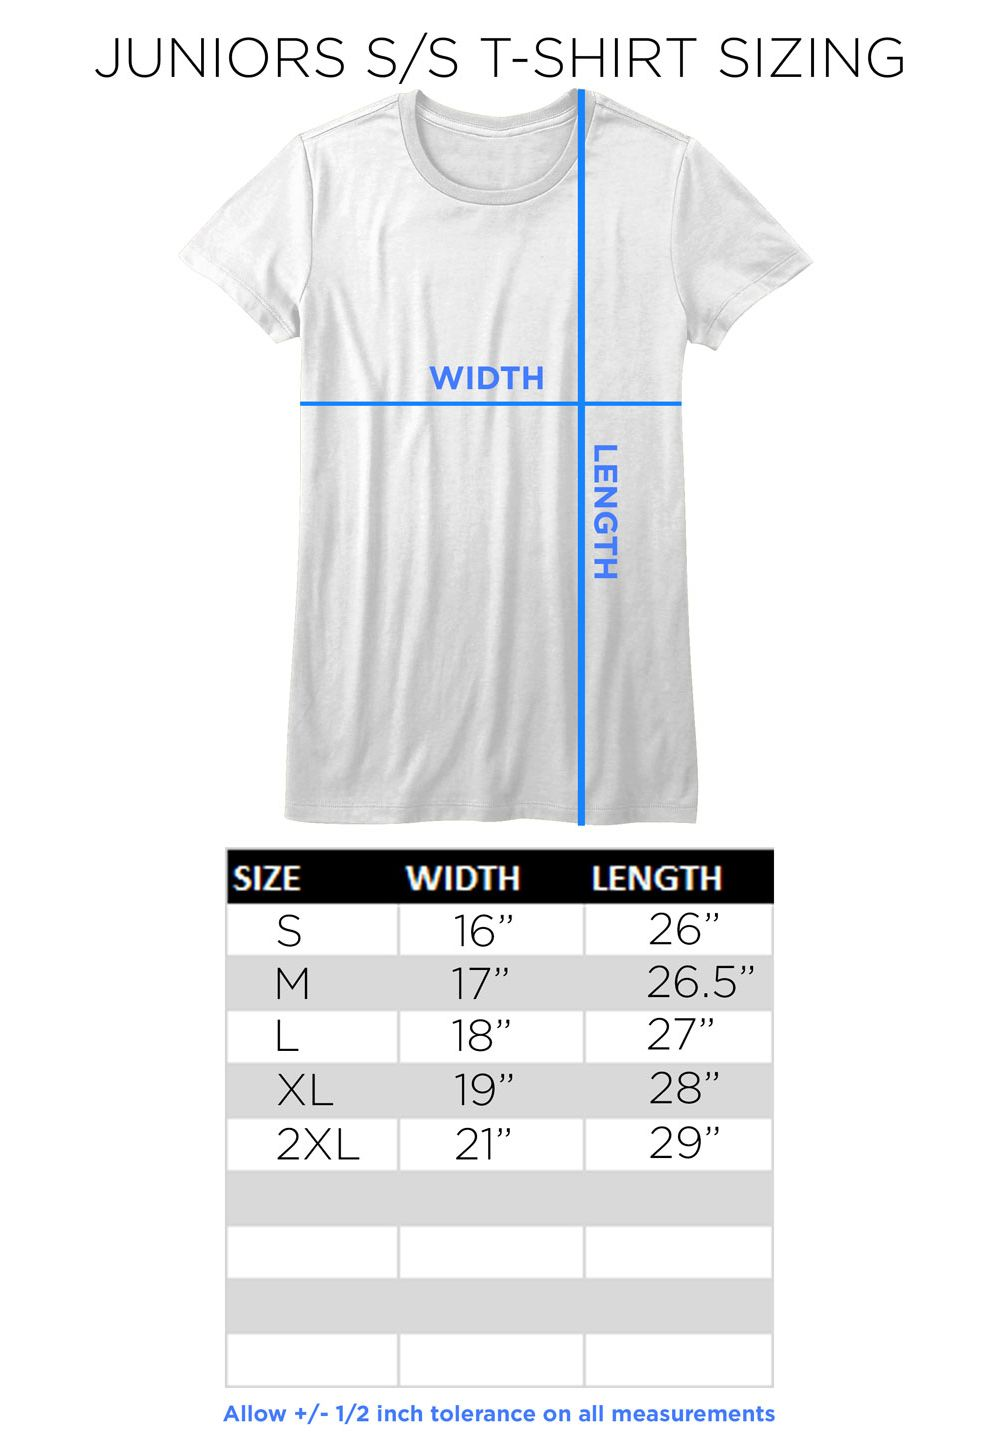 ac-women-s-short-sleeve-size-chart-2.jpg